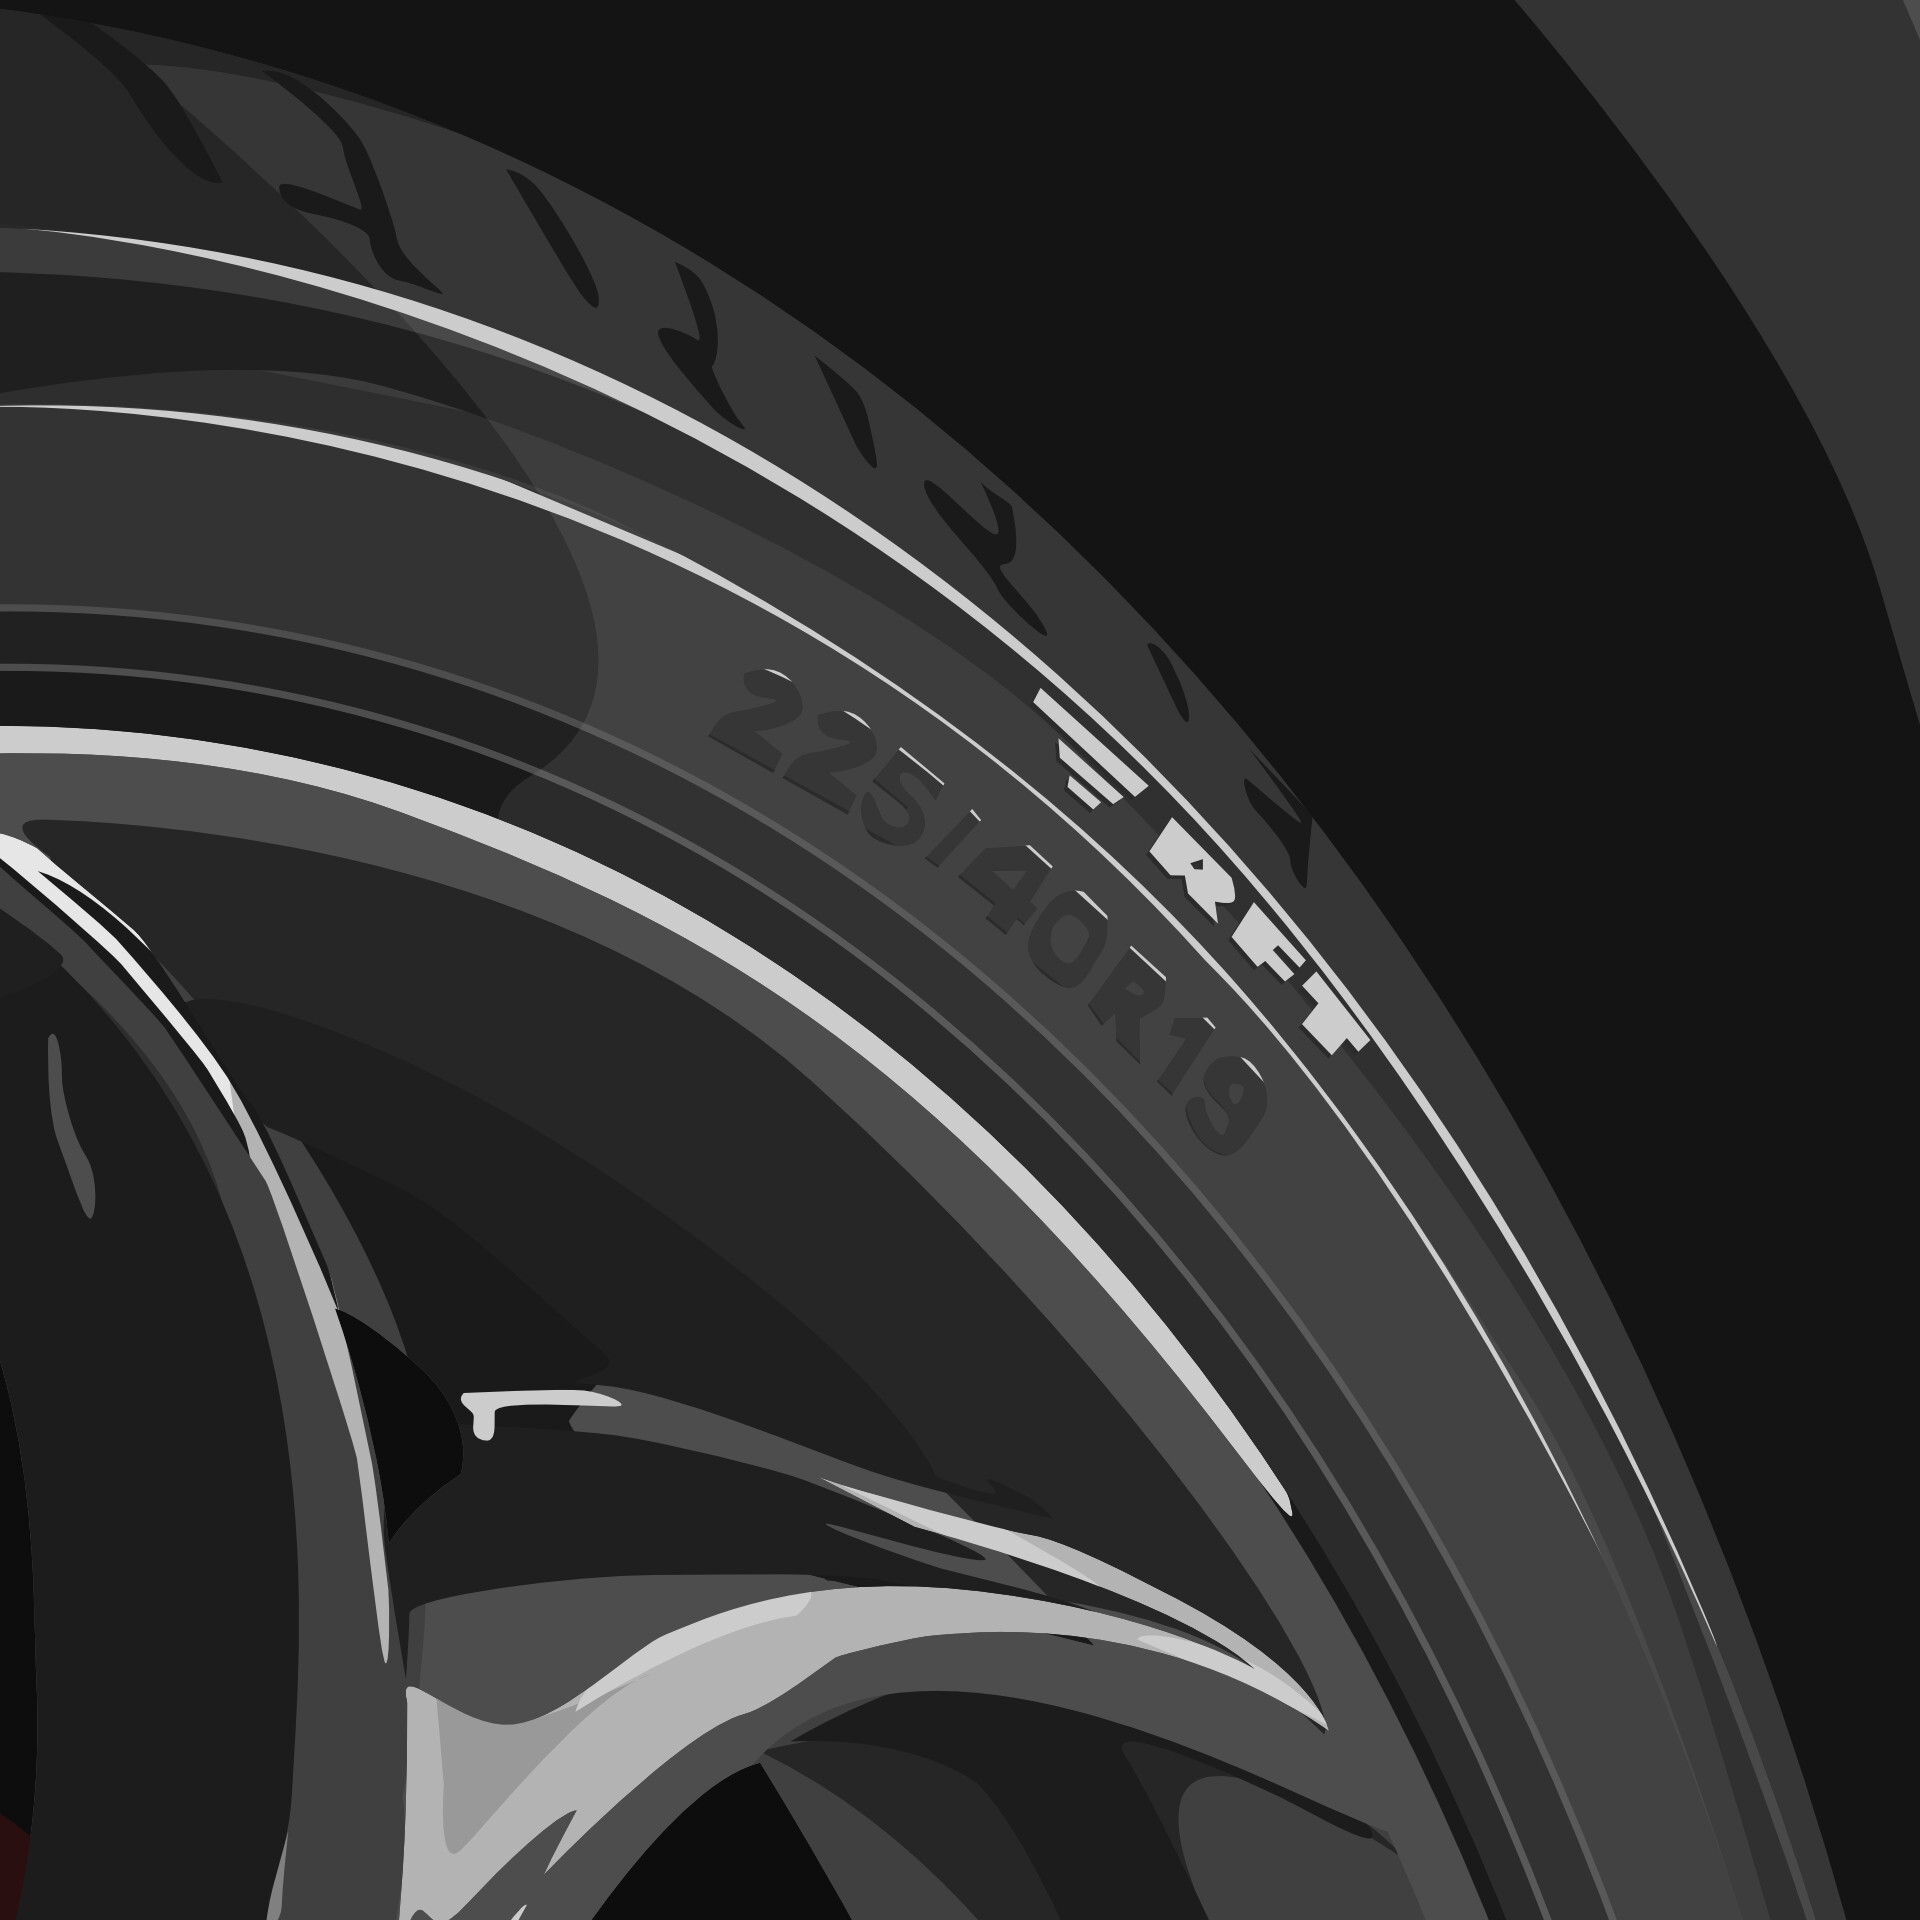 Detailed view of the etching on tyre